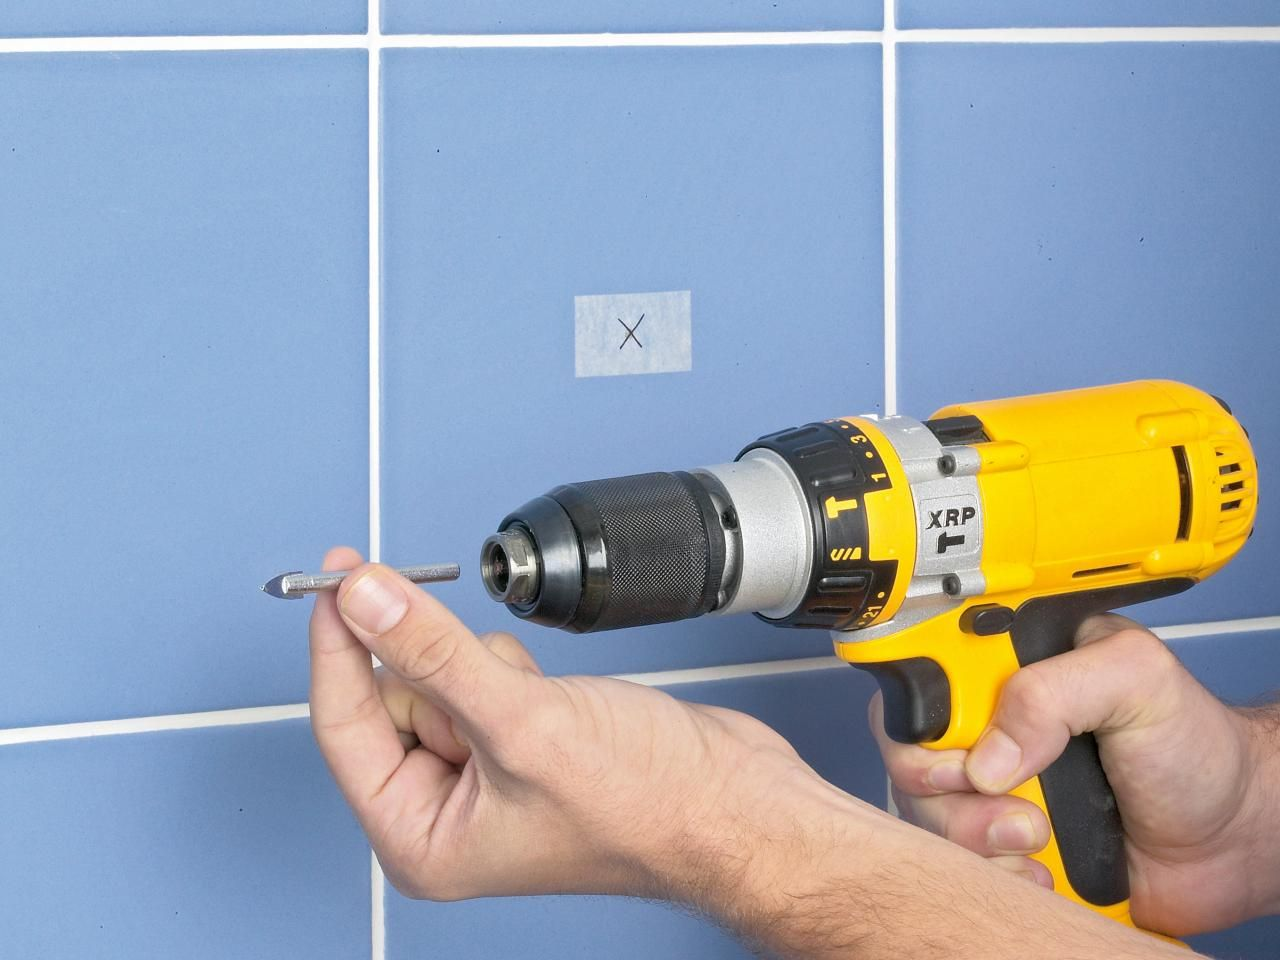 how to drill through tile without breaking it